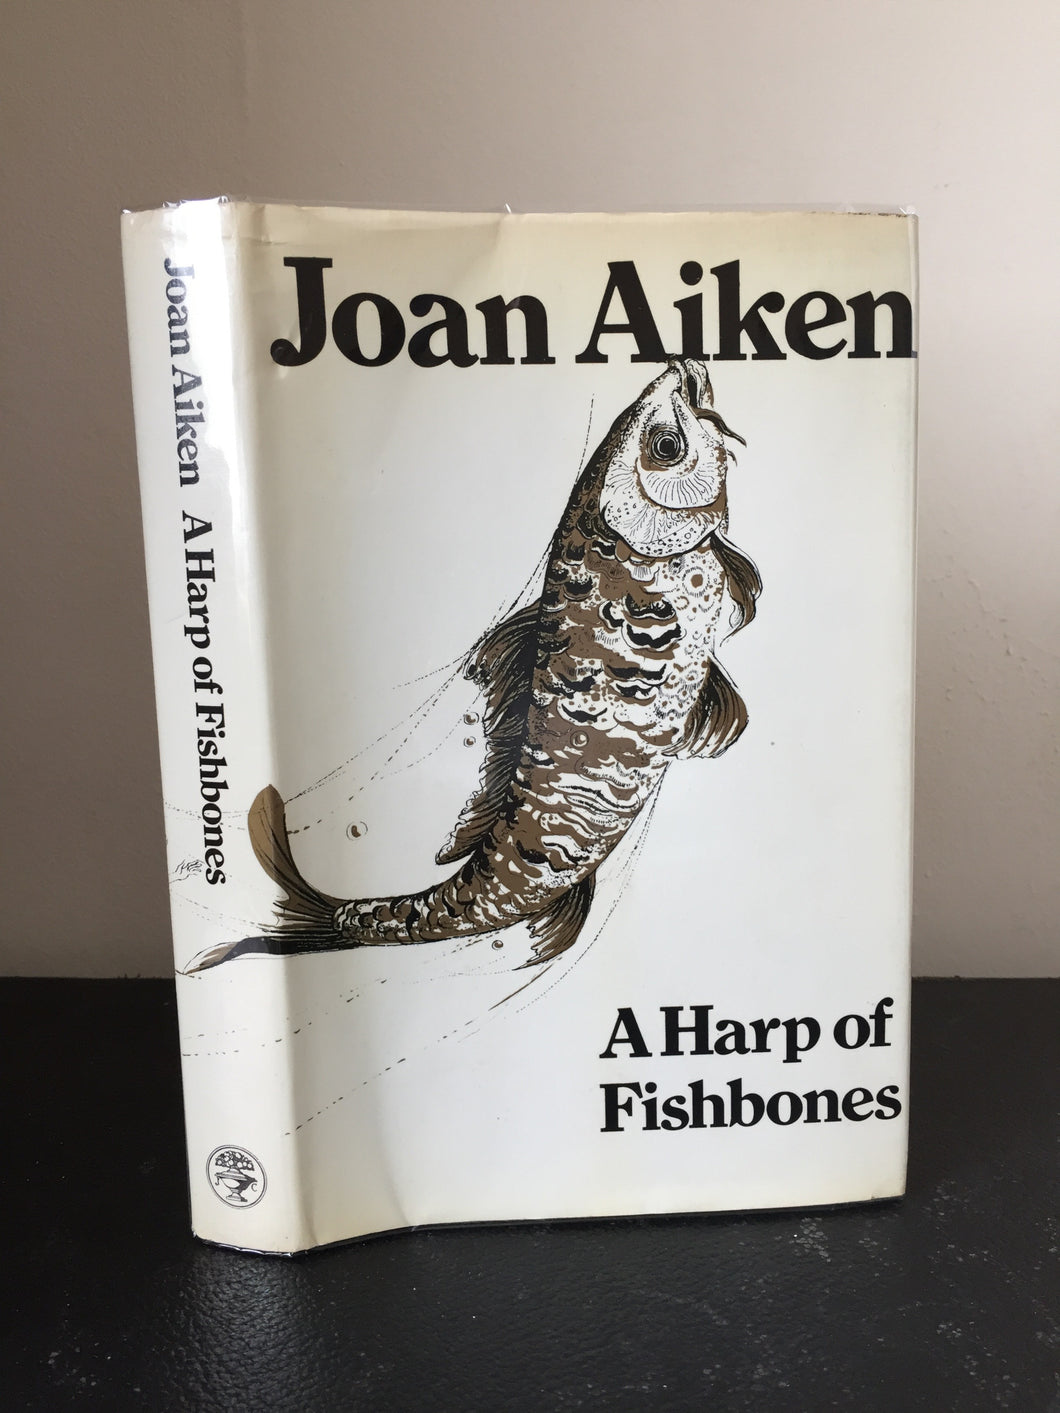 A Harp of Fishbones and Other Stories